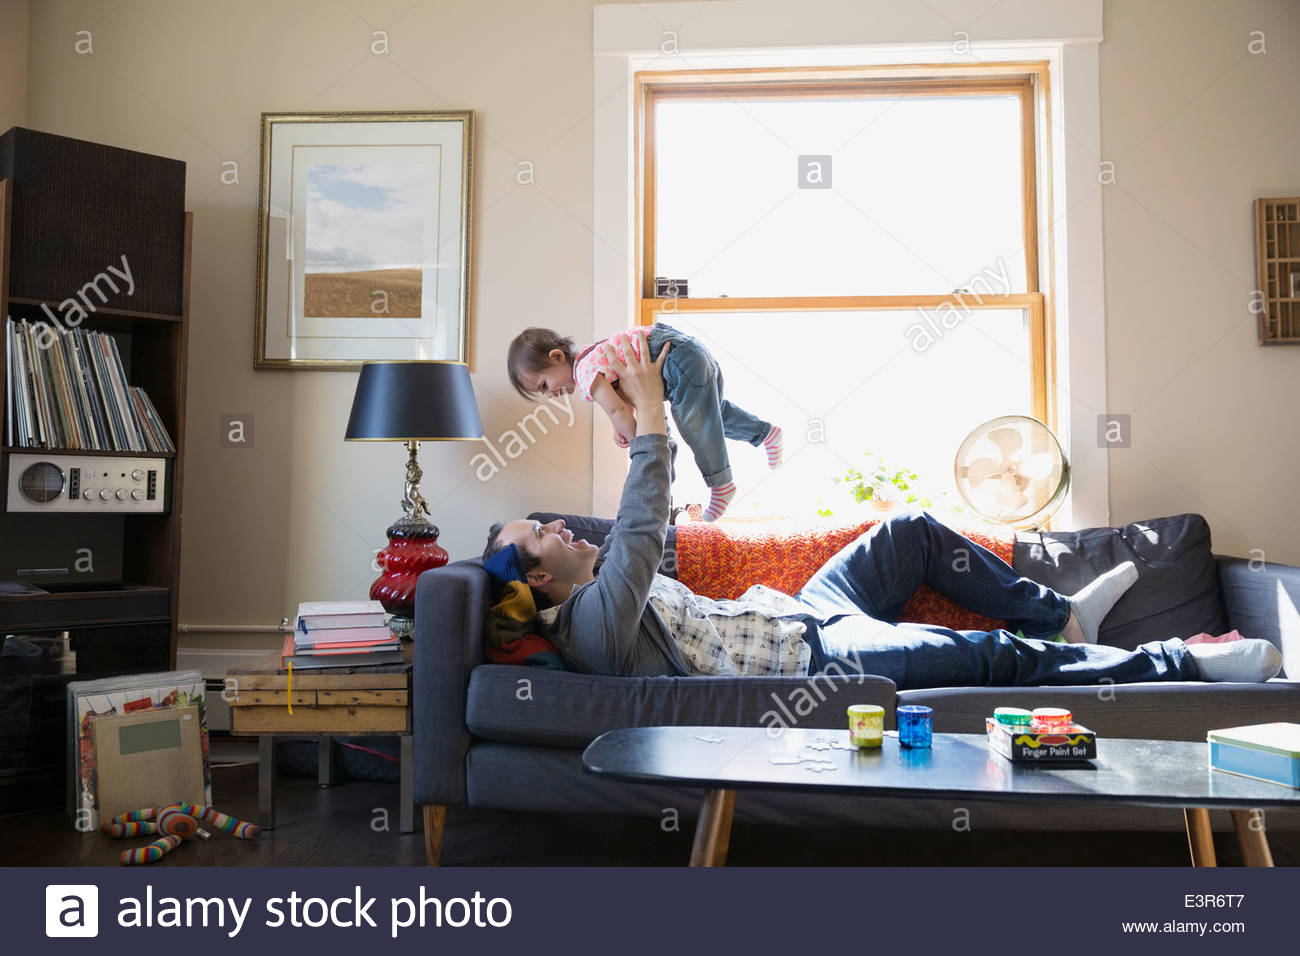 Father lifting baby daughter overhead on sofa - Stock Image